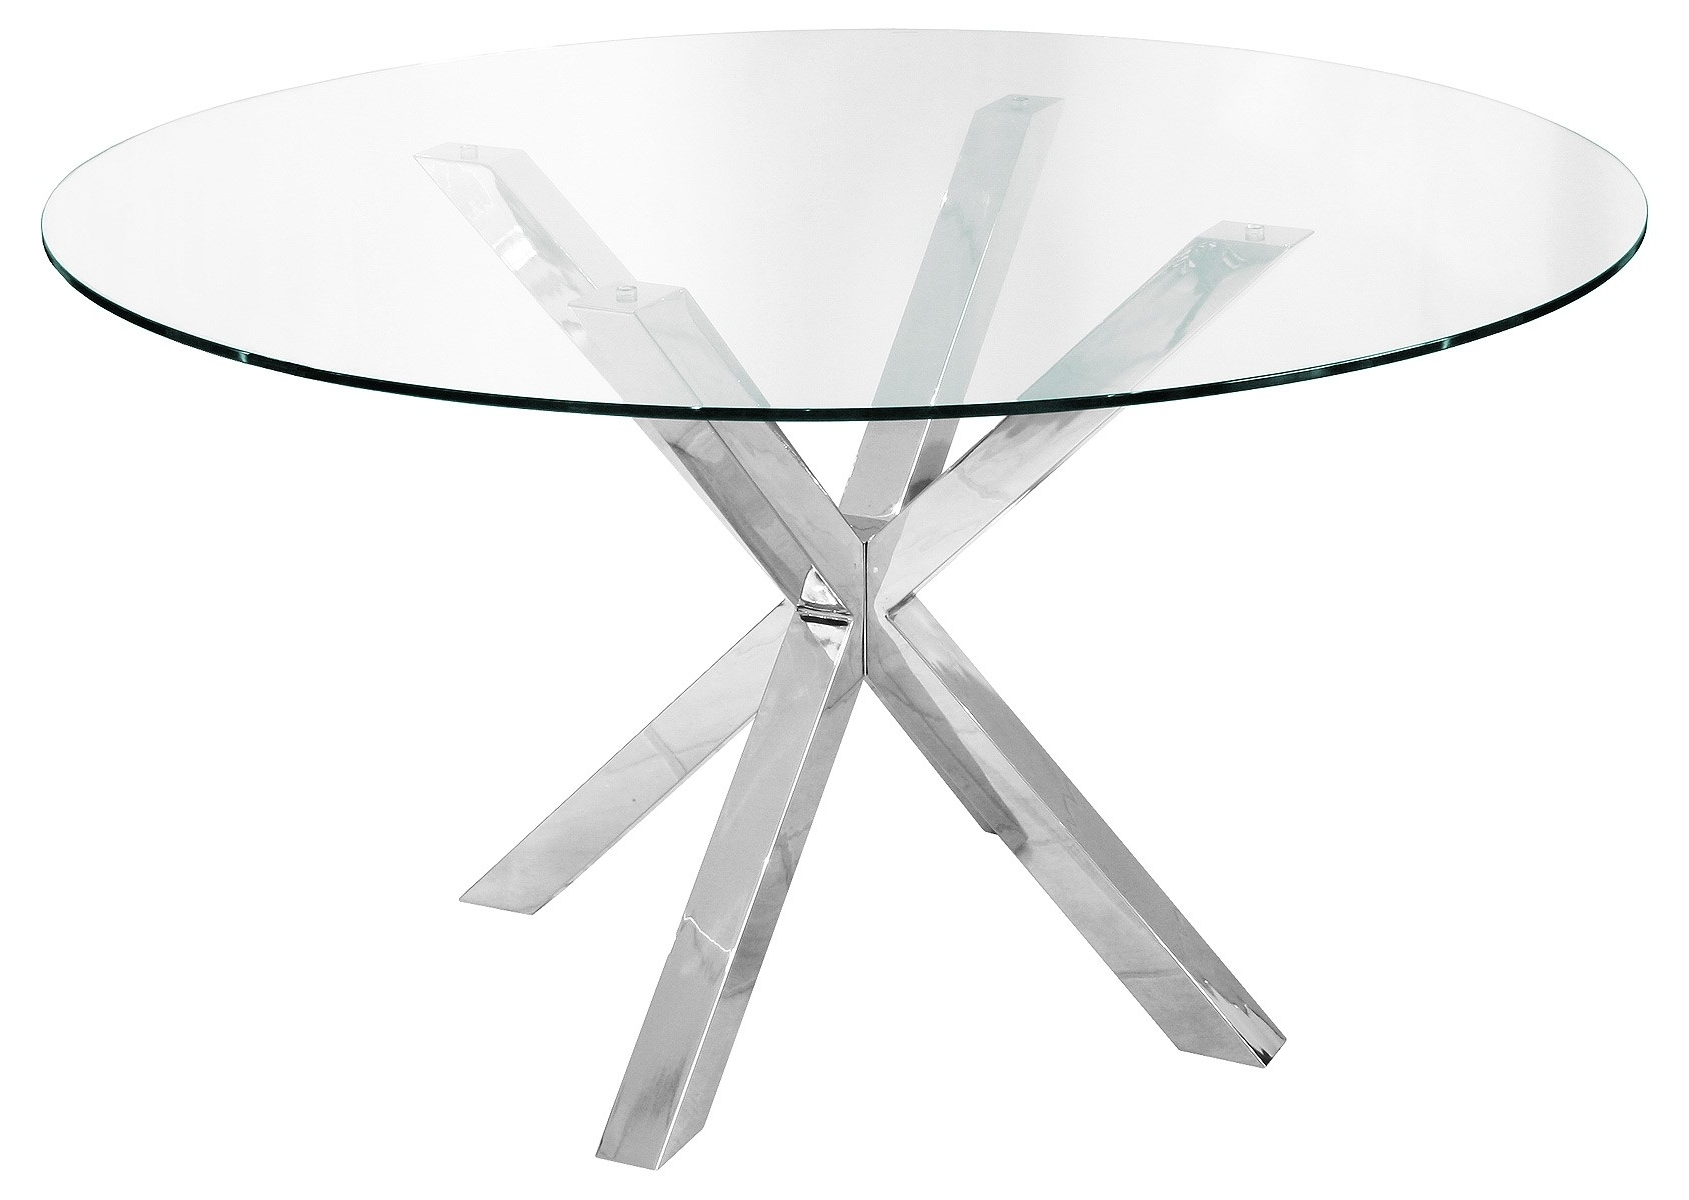 Chrome Glass Dining Tables Regarding Most Current Crossly Round Dining Table – Be Fabulous! (View 10 of 25)